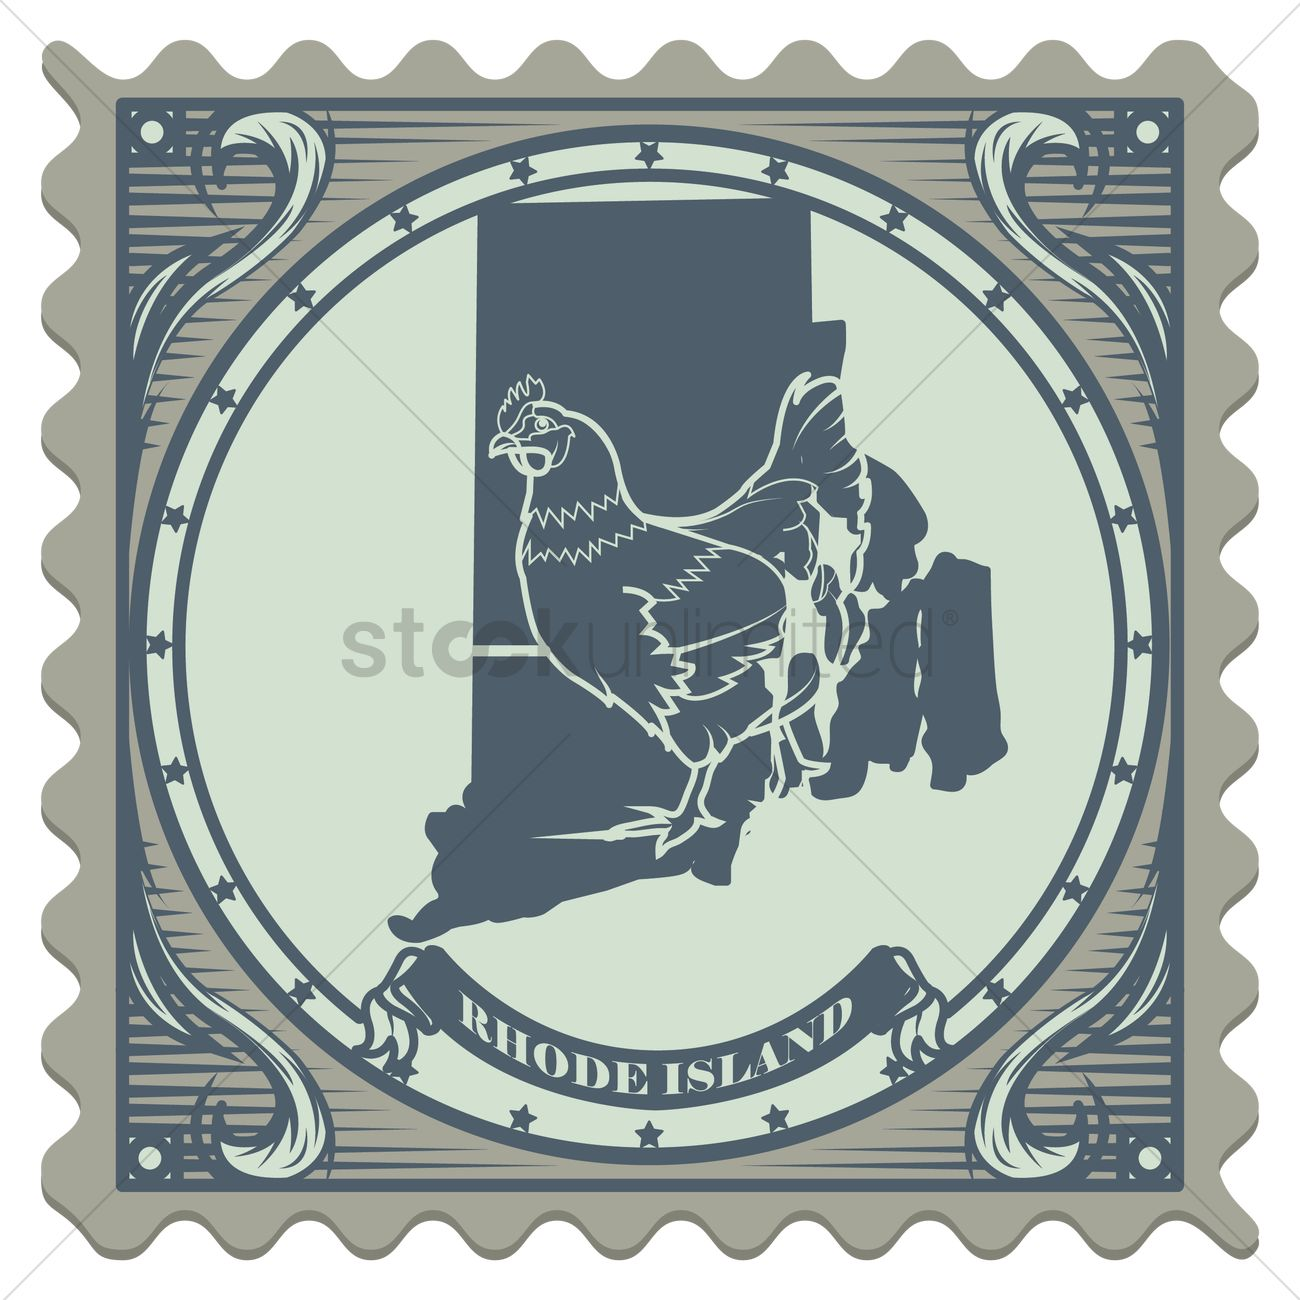 Rhode Island State Postage Stamp Vector Image 1557377 Stockunlimited